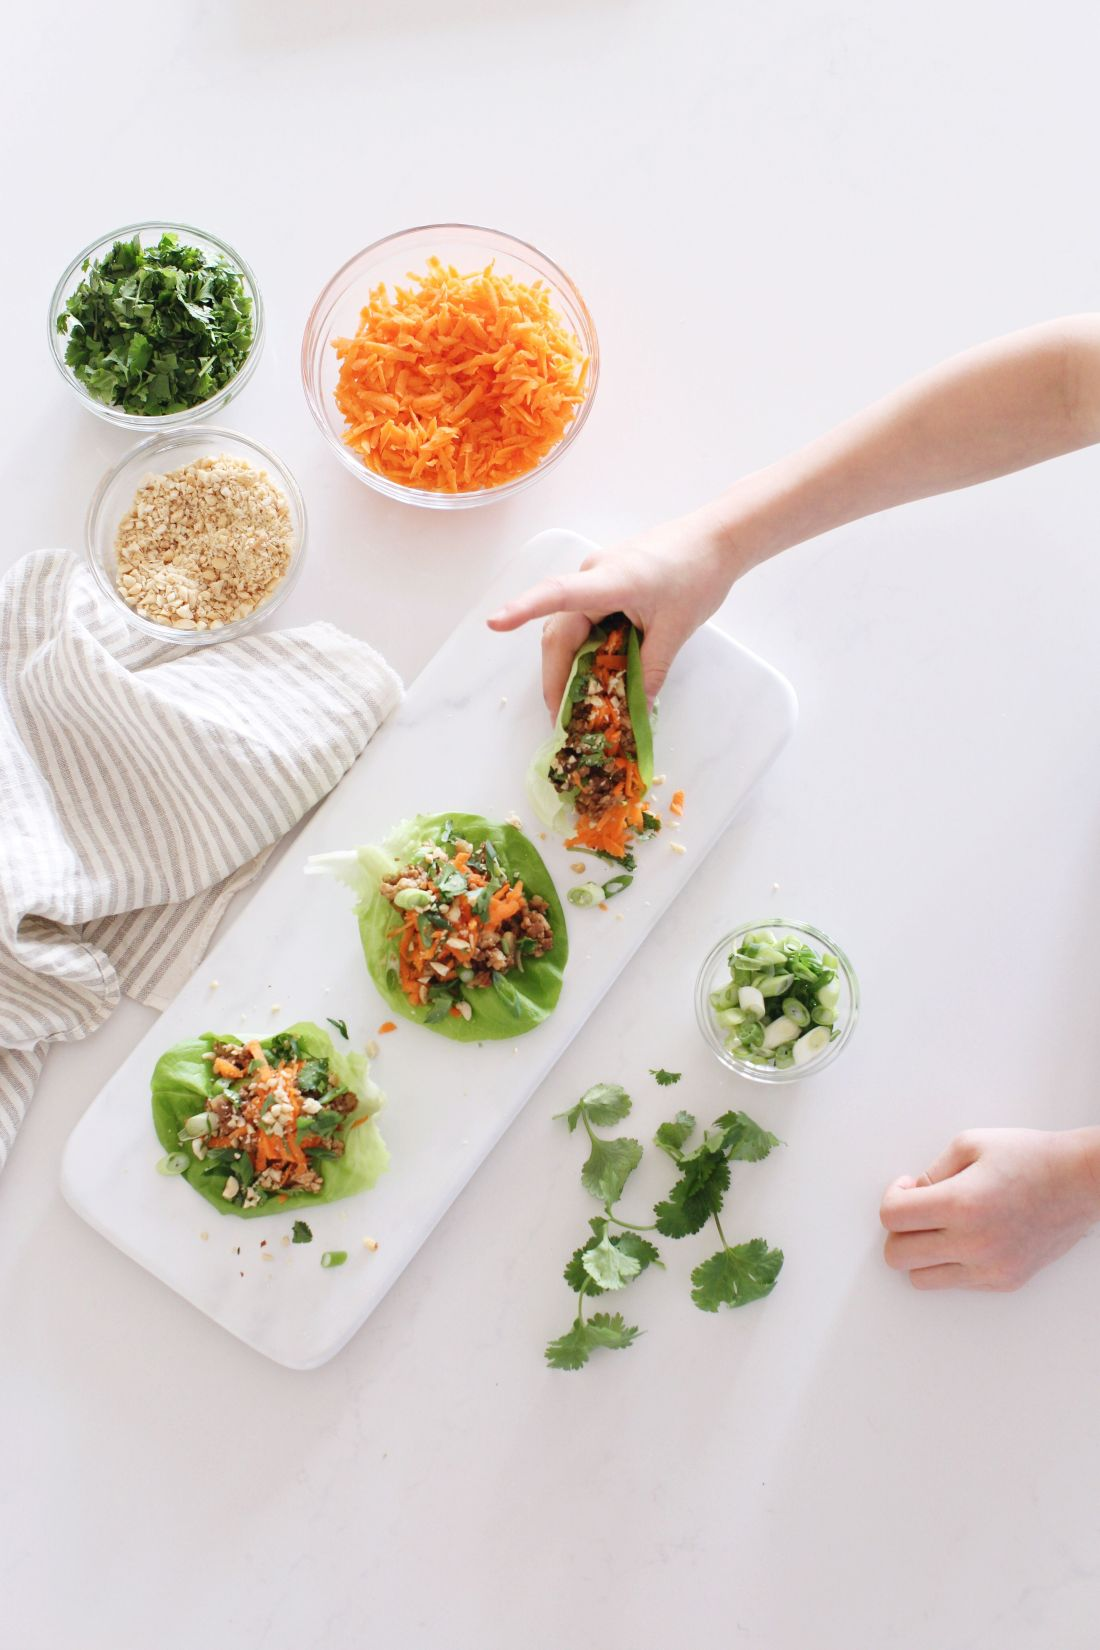 Lettuce Wraps for an easy veggie packed dinner, lunch or appetizer that can be made vegan.